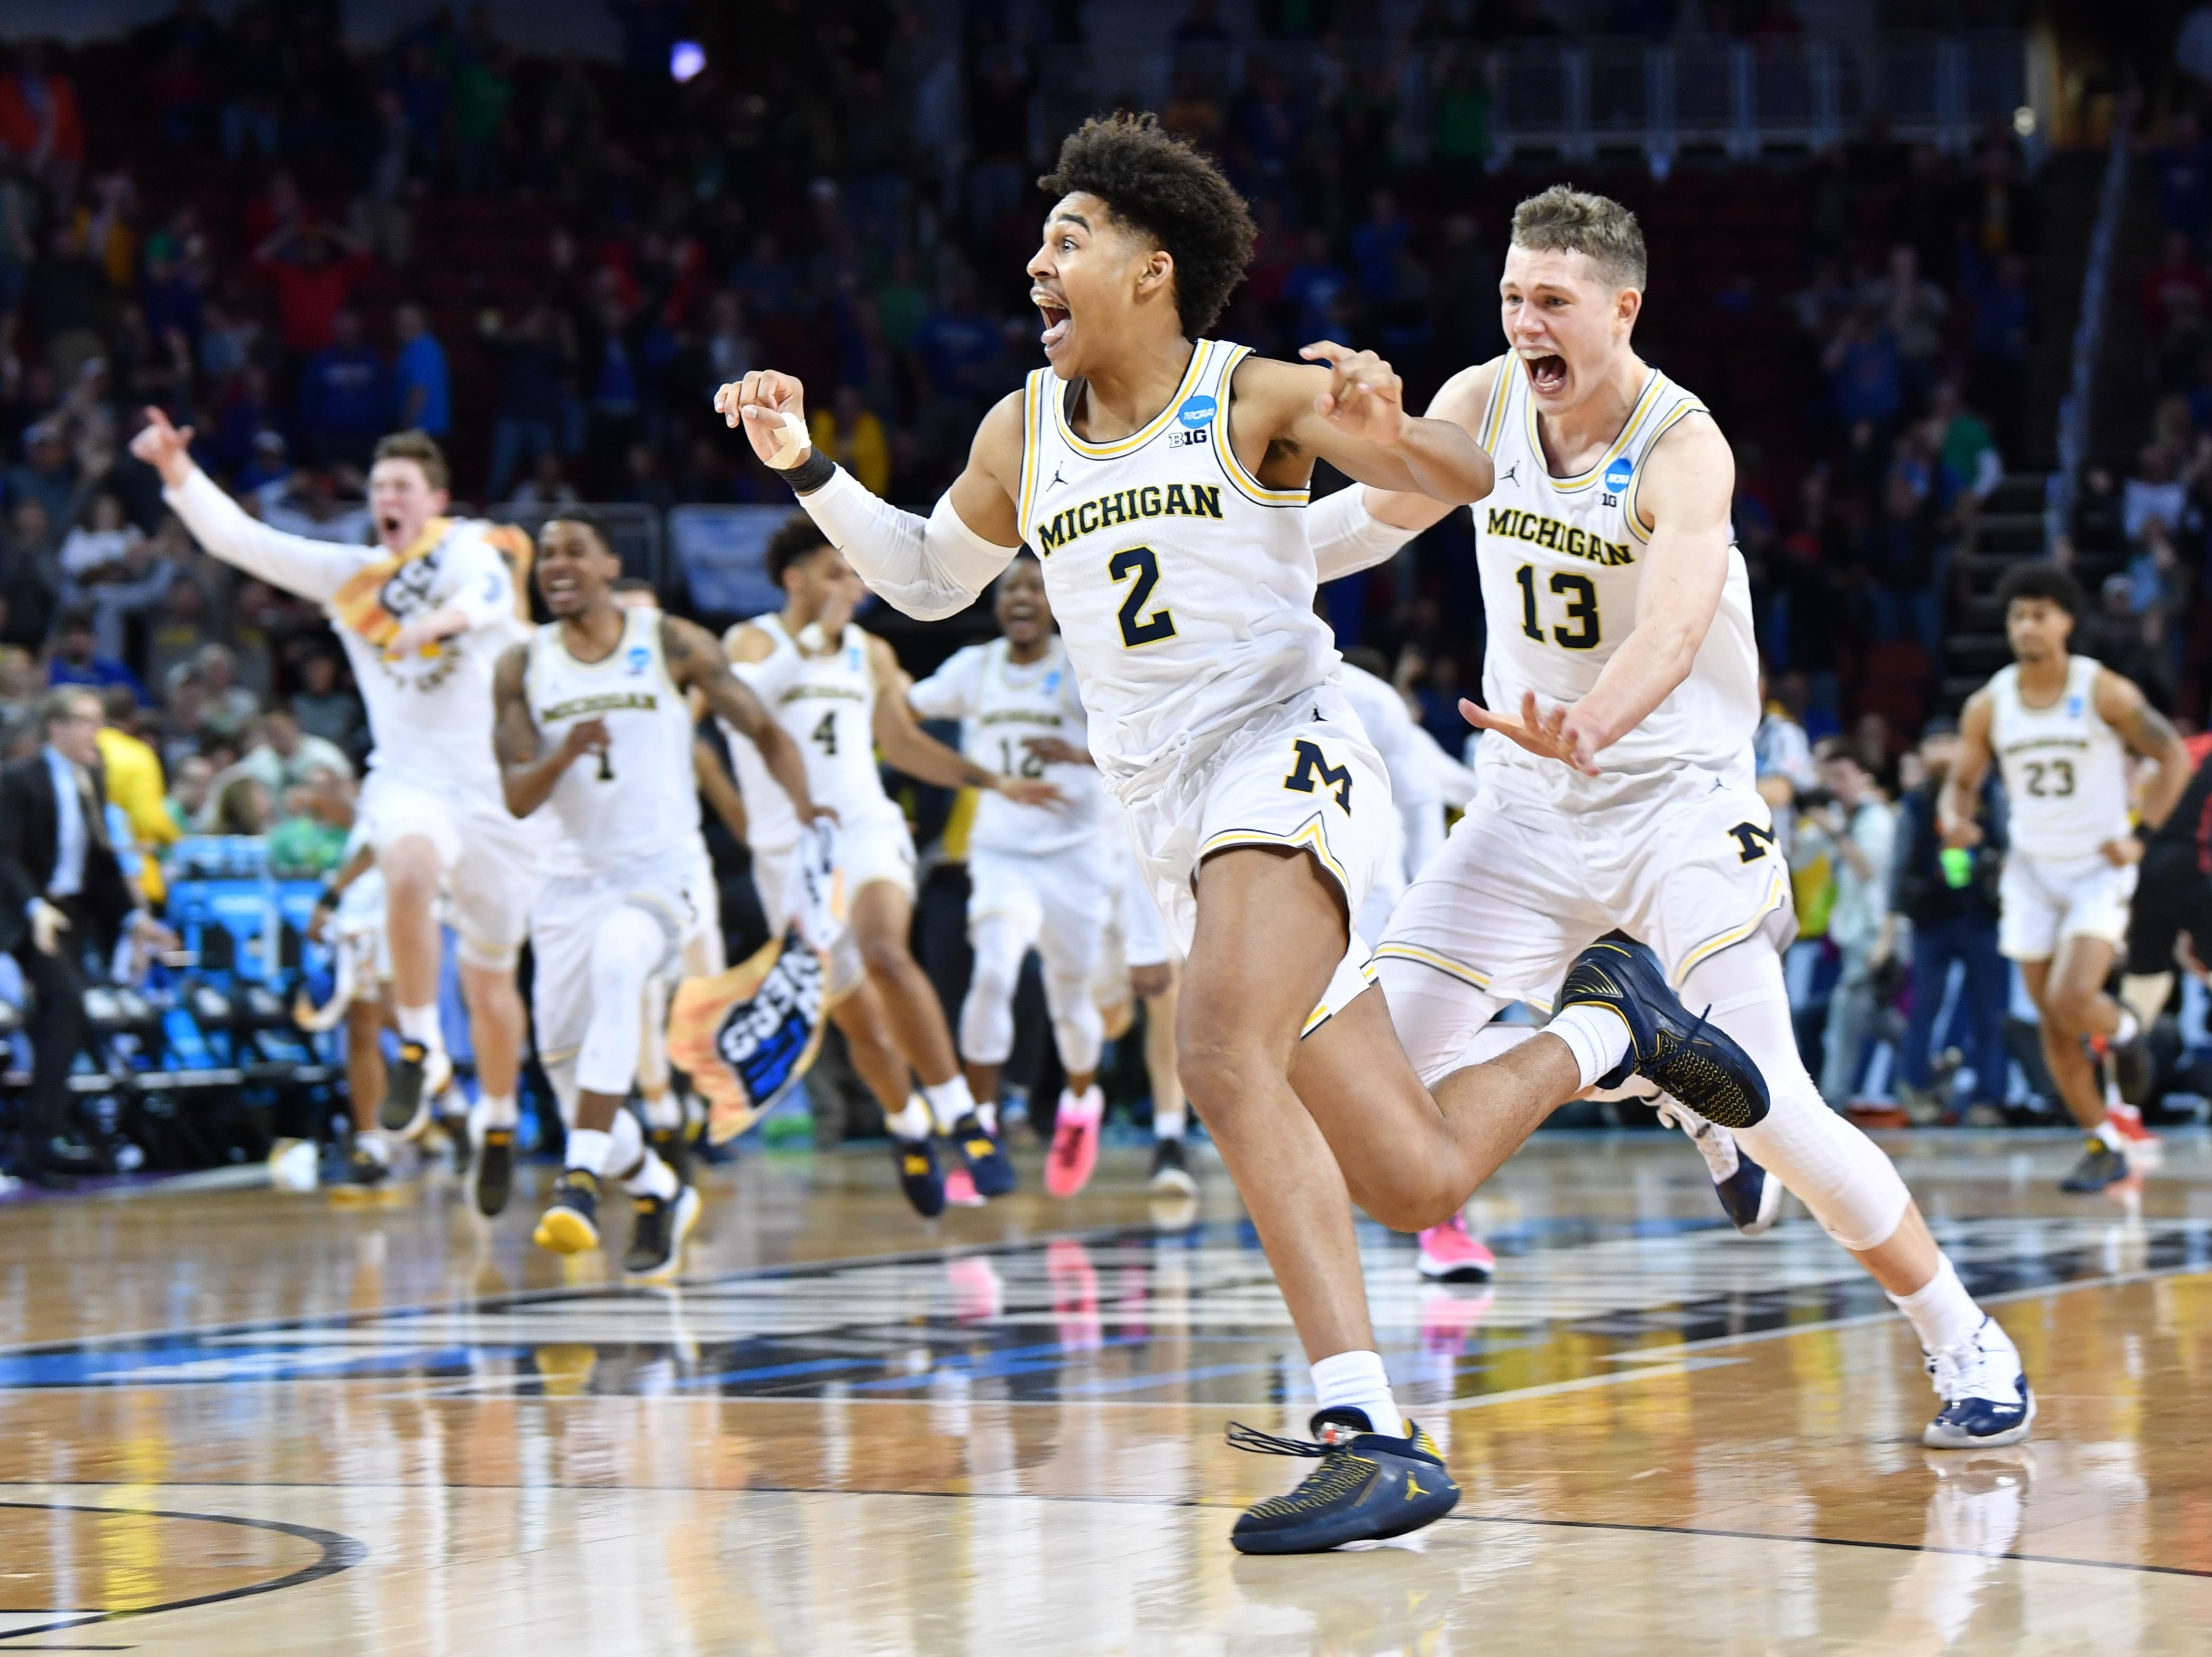 March 17: Michigan Wolverines guard Jordan Poole (2) celebrates with teammates after hitting the game-winning 3-pointer to defeat the Houston Cougars in the second round of the NCAA tournament.